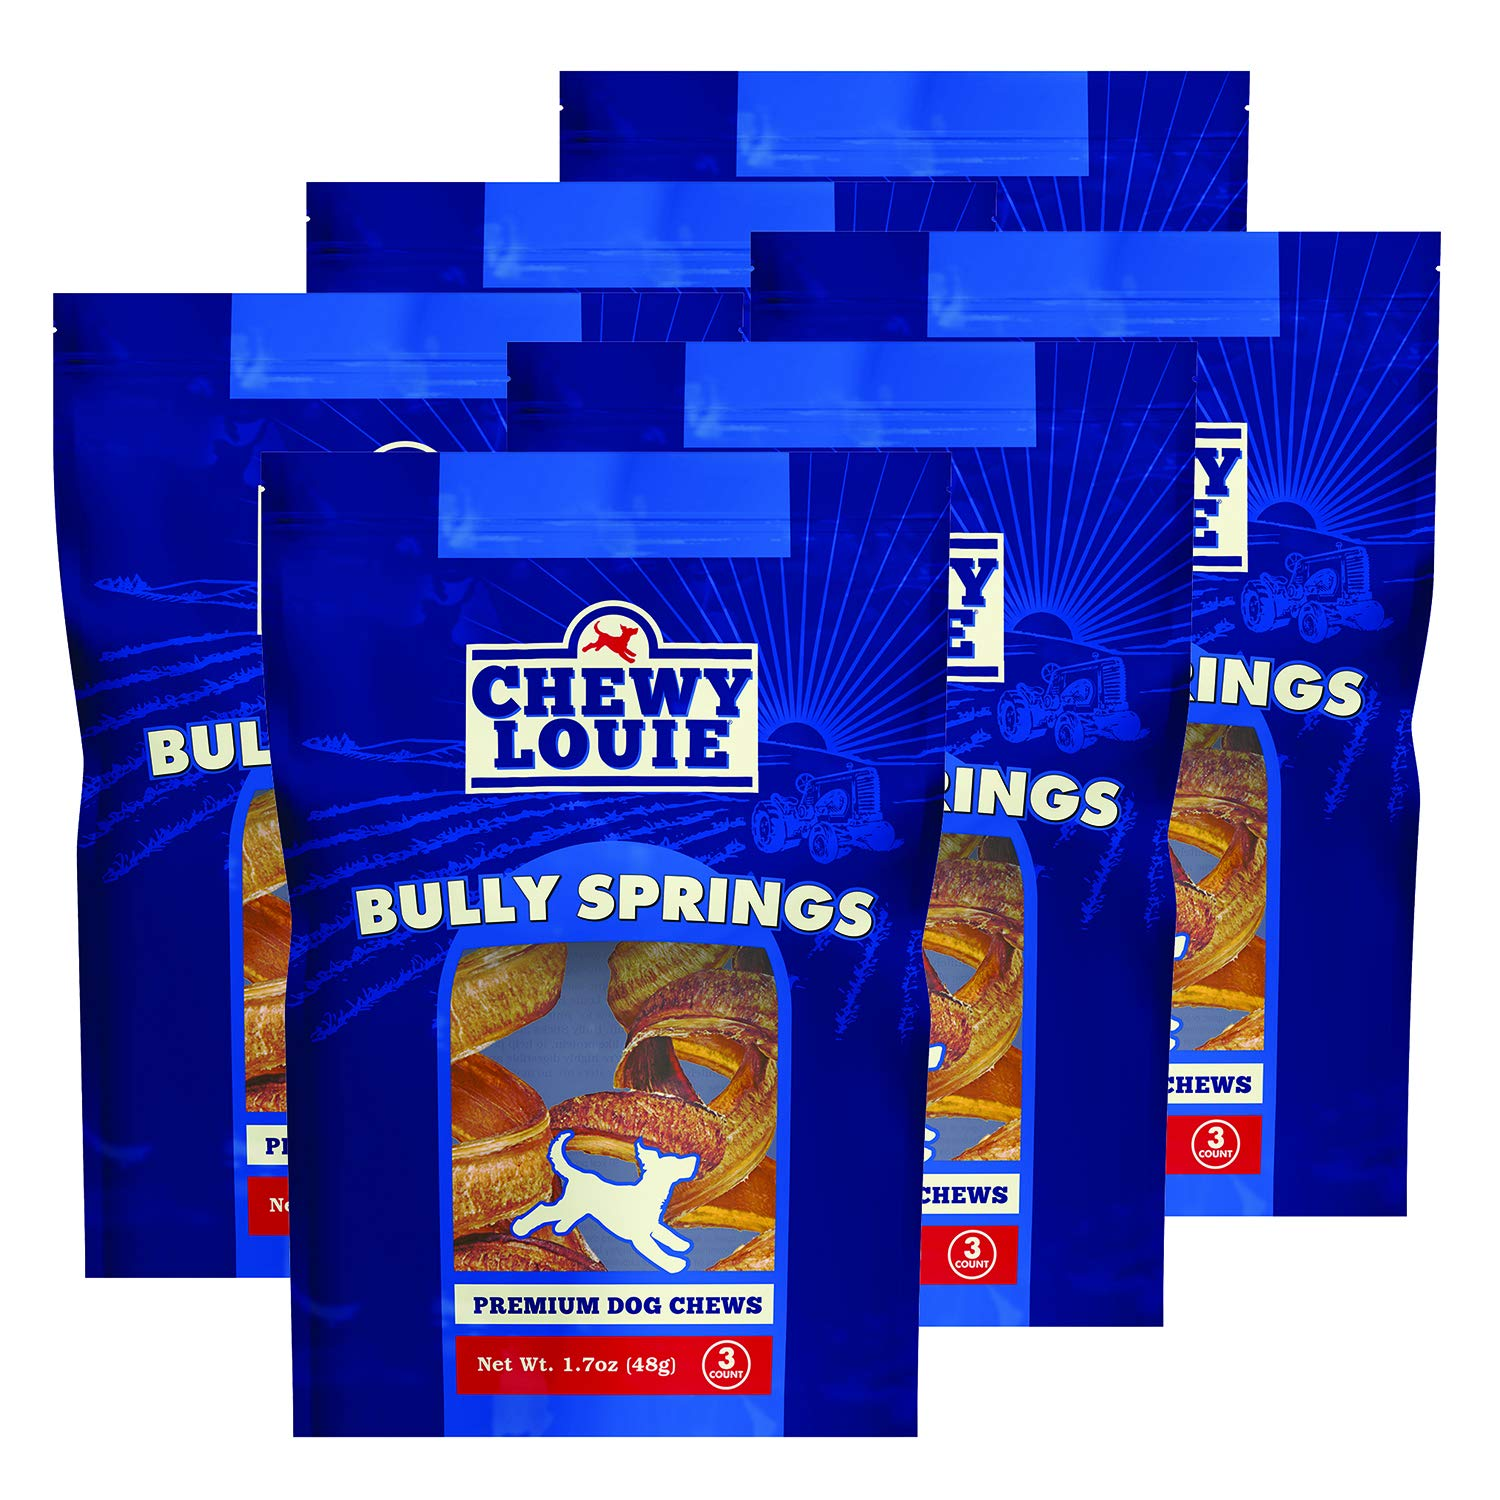 CHEWY LOUIE Bully Treats 3pk – 100 Beef Treat, No Artificial Preservatives, Colors, or Flavors. Tough, Long-Lasting, and Dental Support Dog Treats.